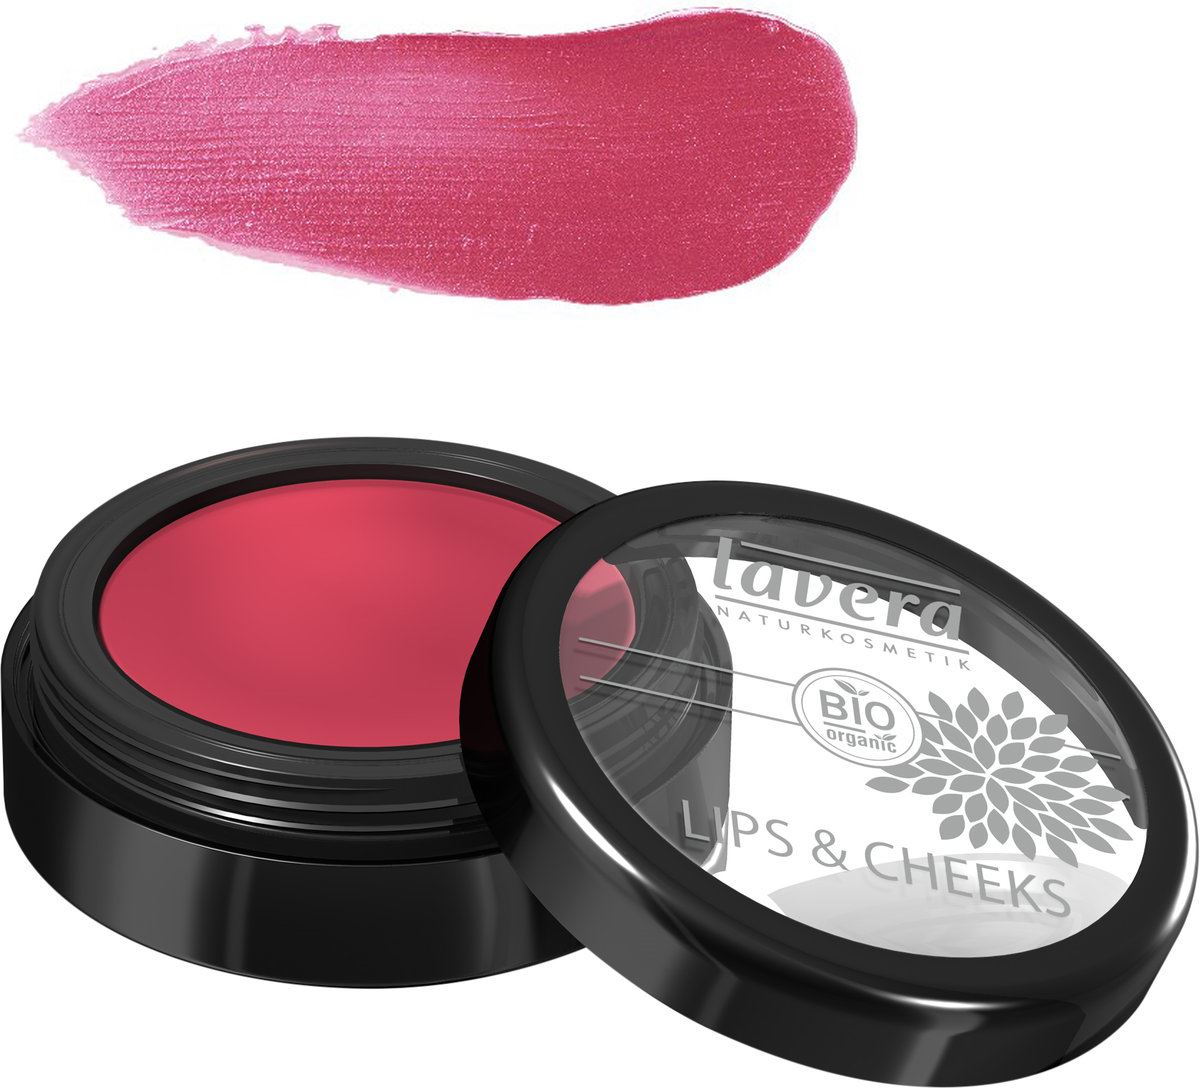 Lavera trend sensitiv lips & cheeks 02 cool berry